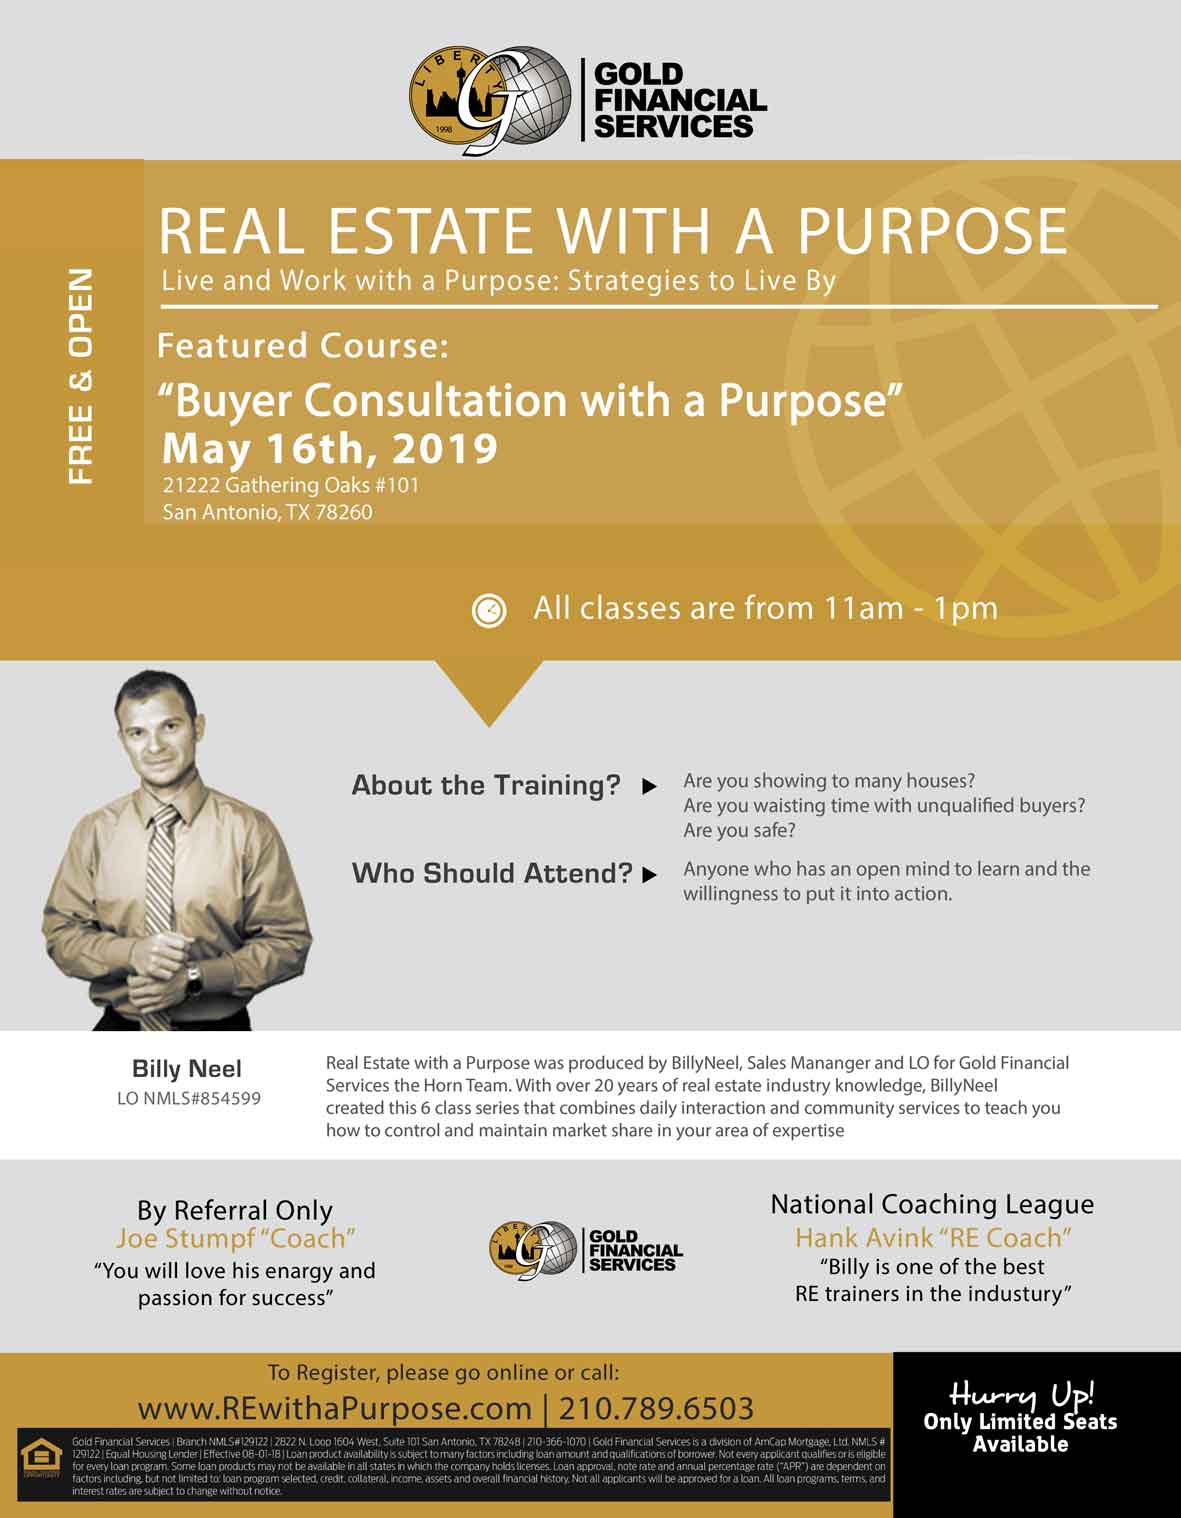 Real Estate with a Purpose BillyNeel